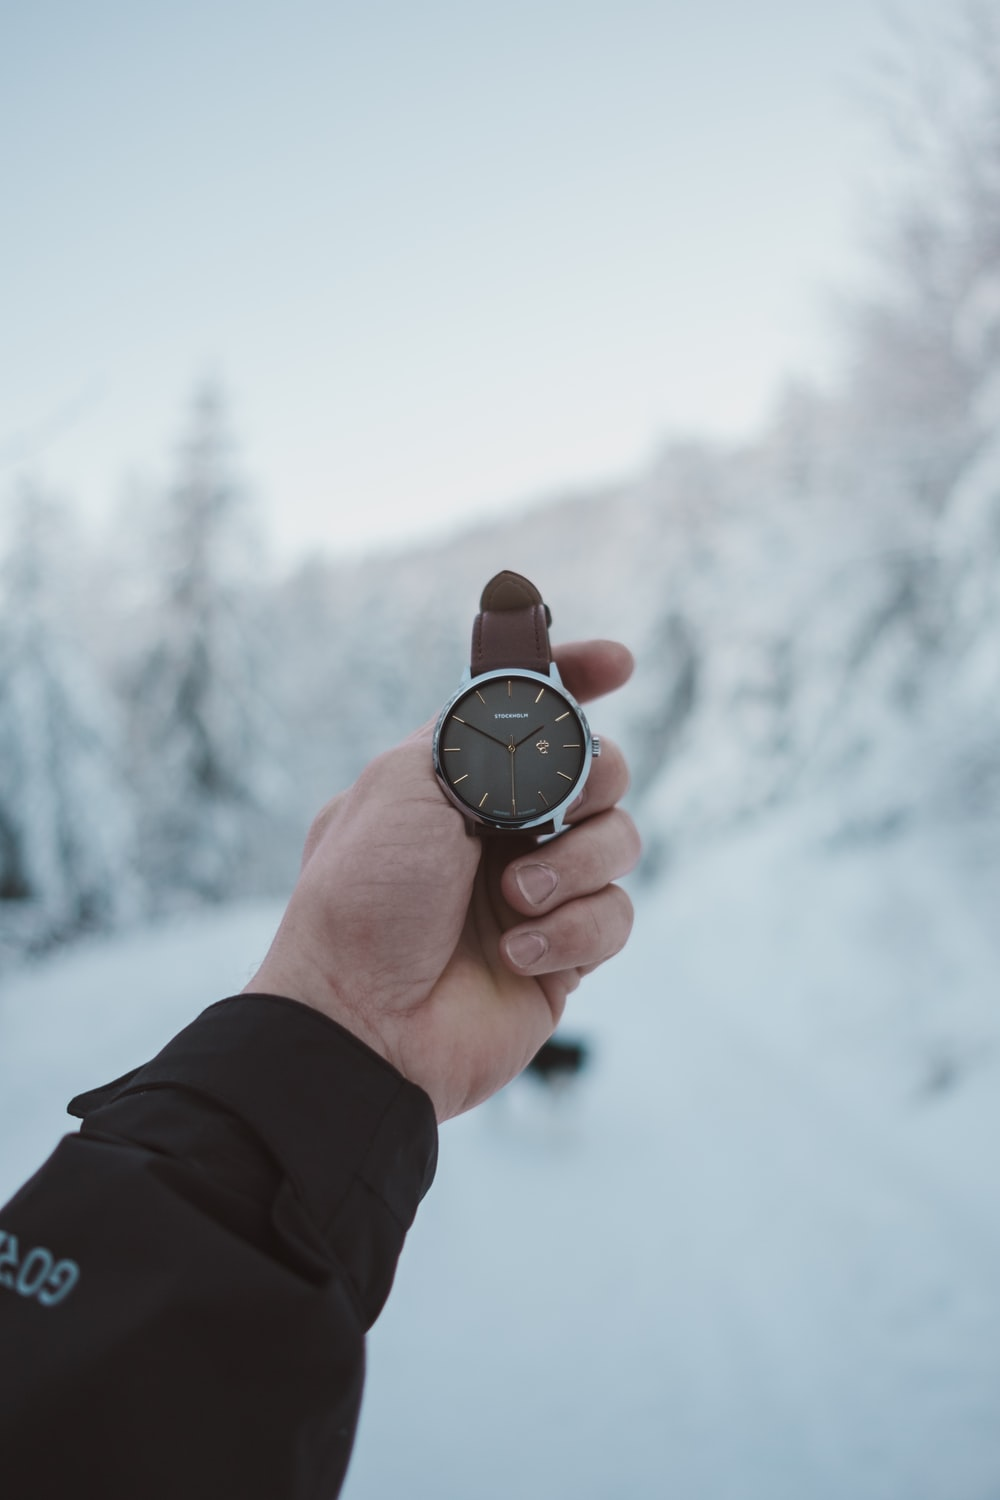 person holding round silver-colored analog watch with brown leather band at 2:50